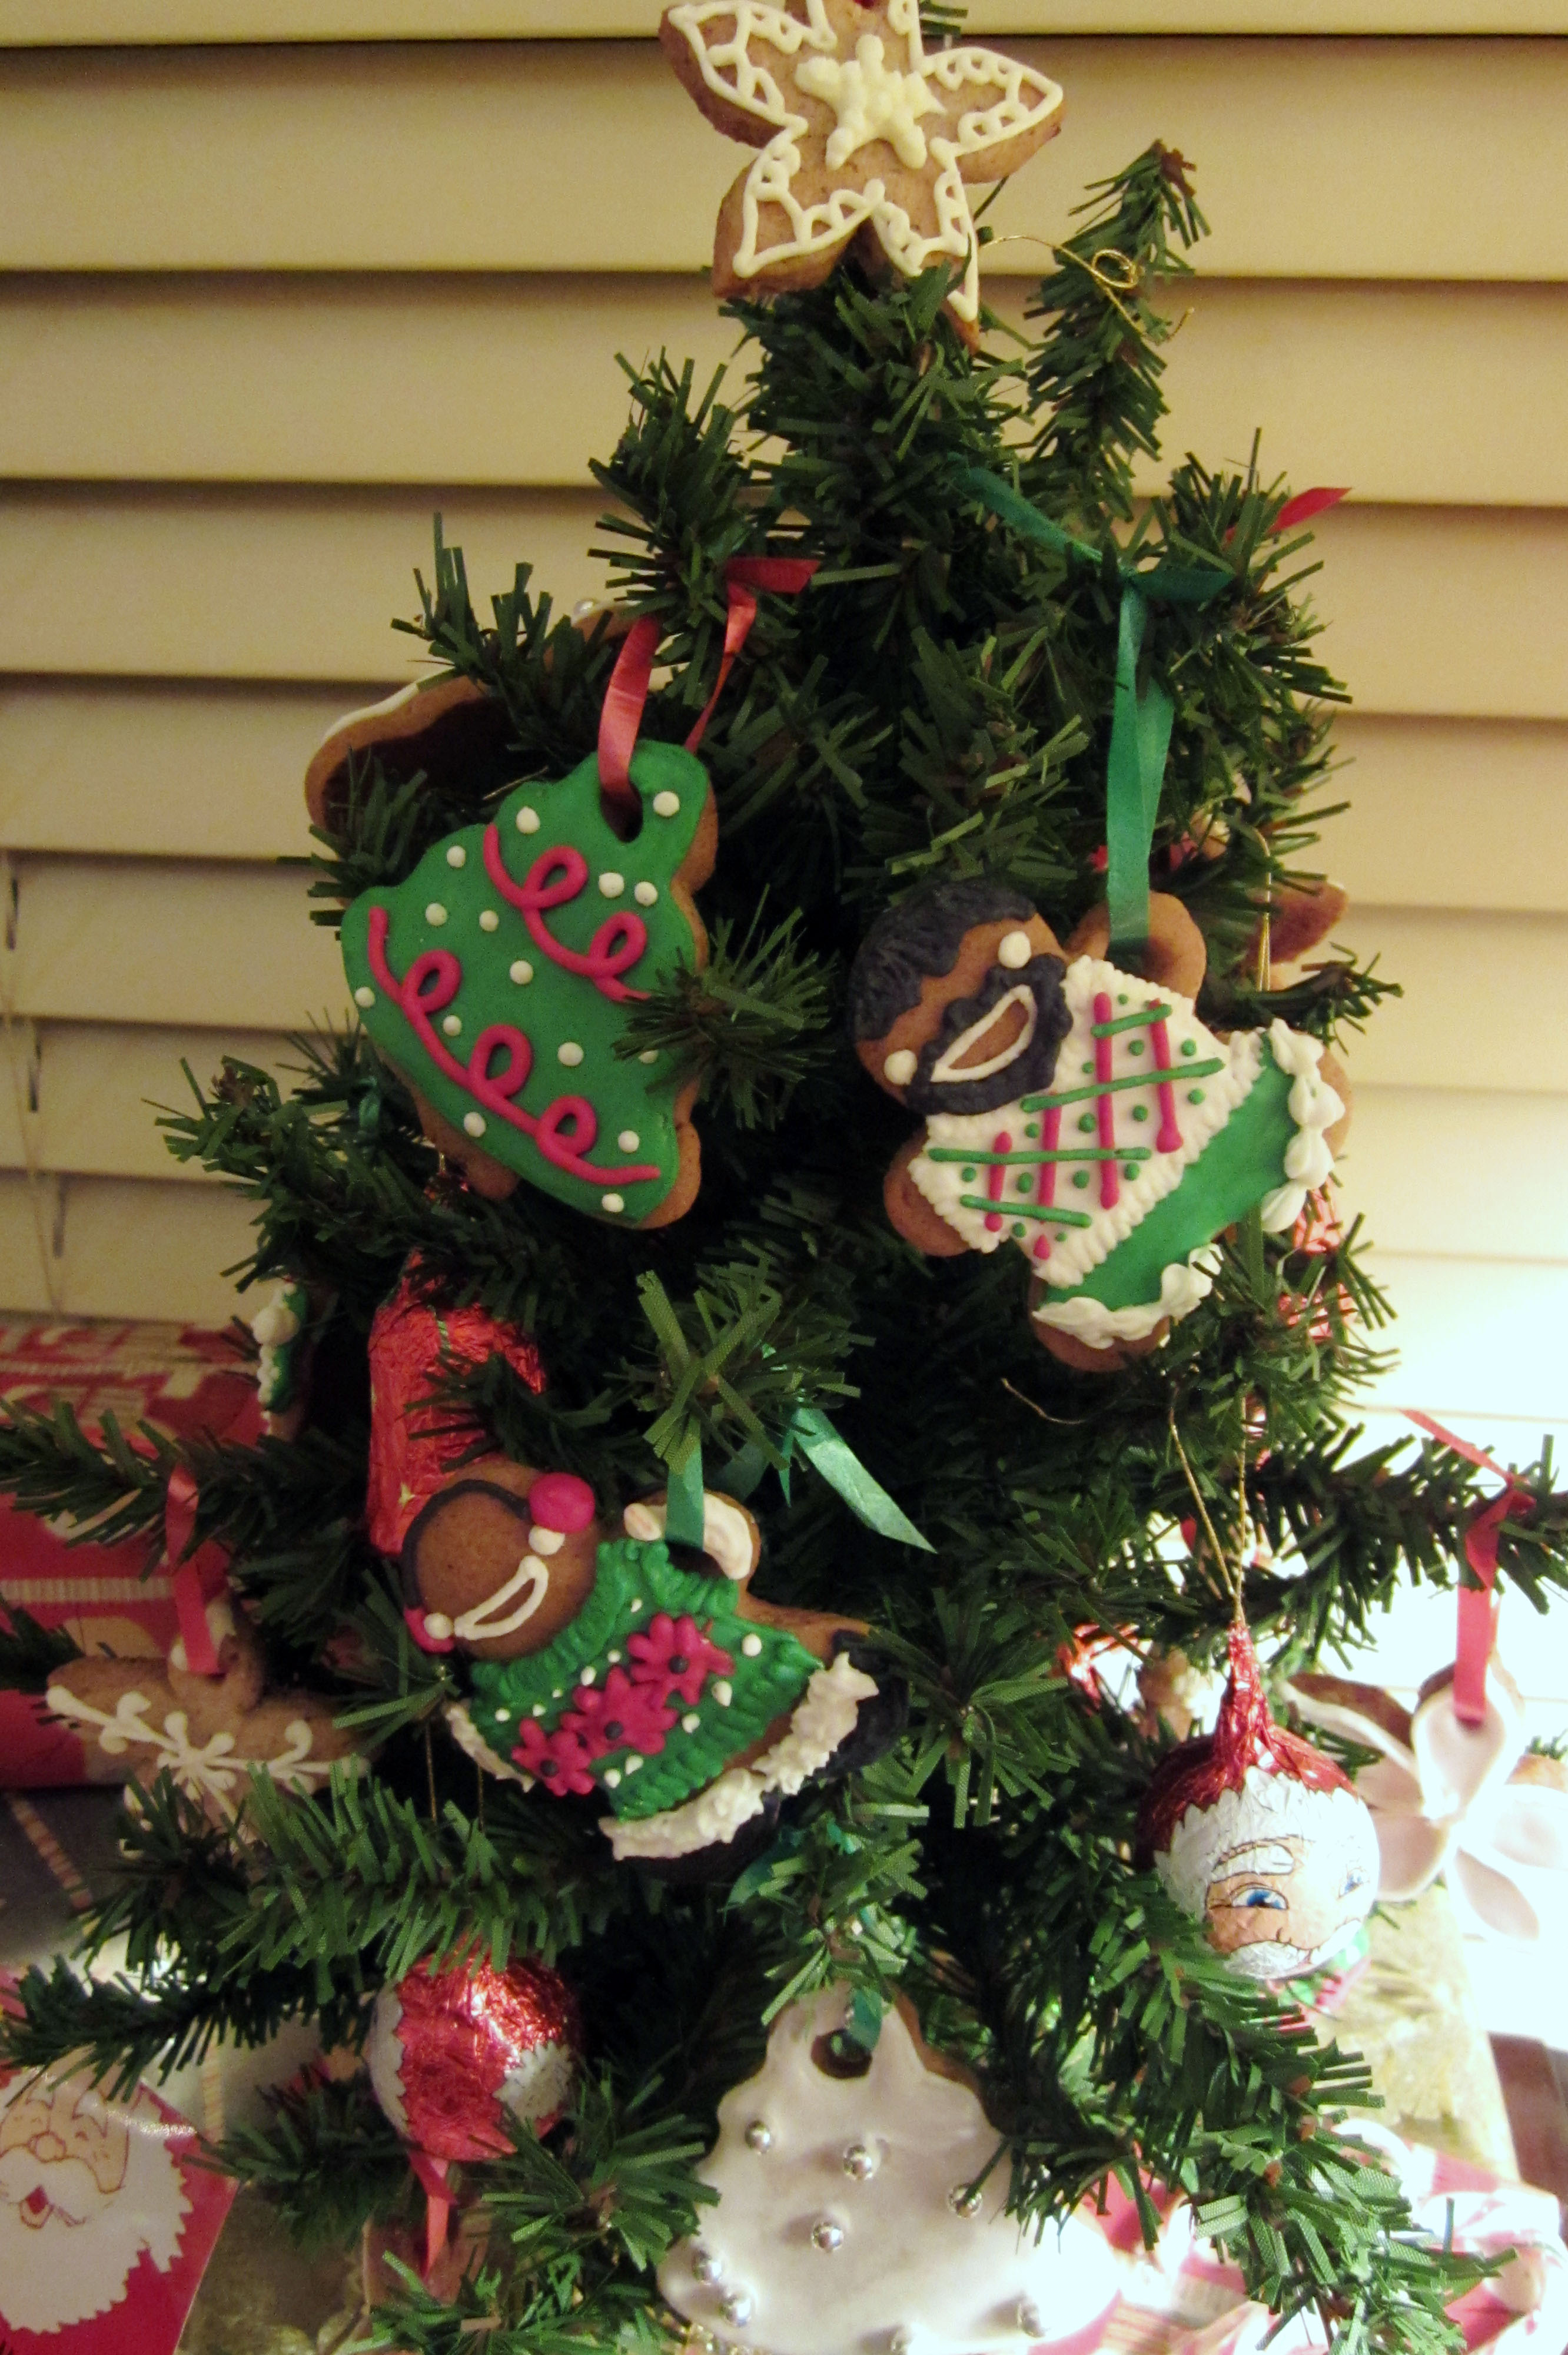 Adorable Edible Mini Christmas Tree With Cookie Ornaments 6 Steps Instructables